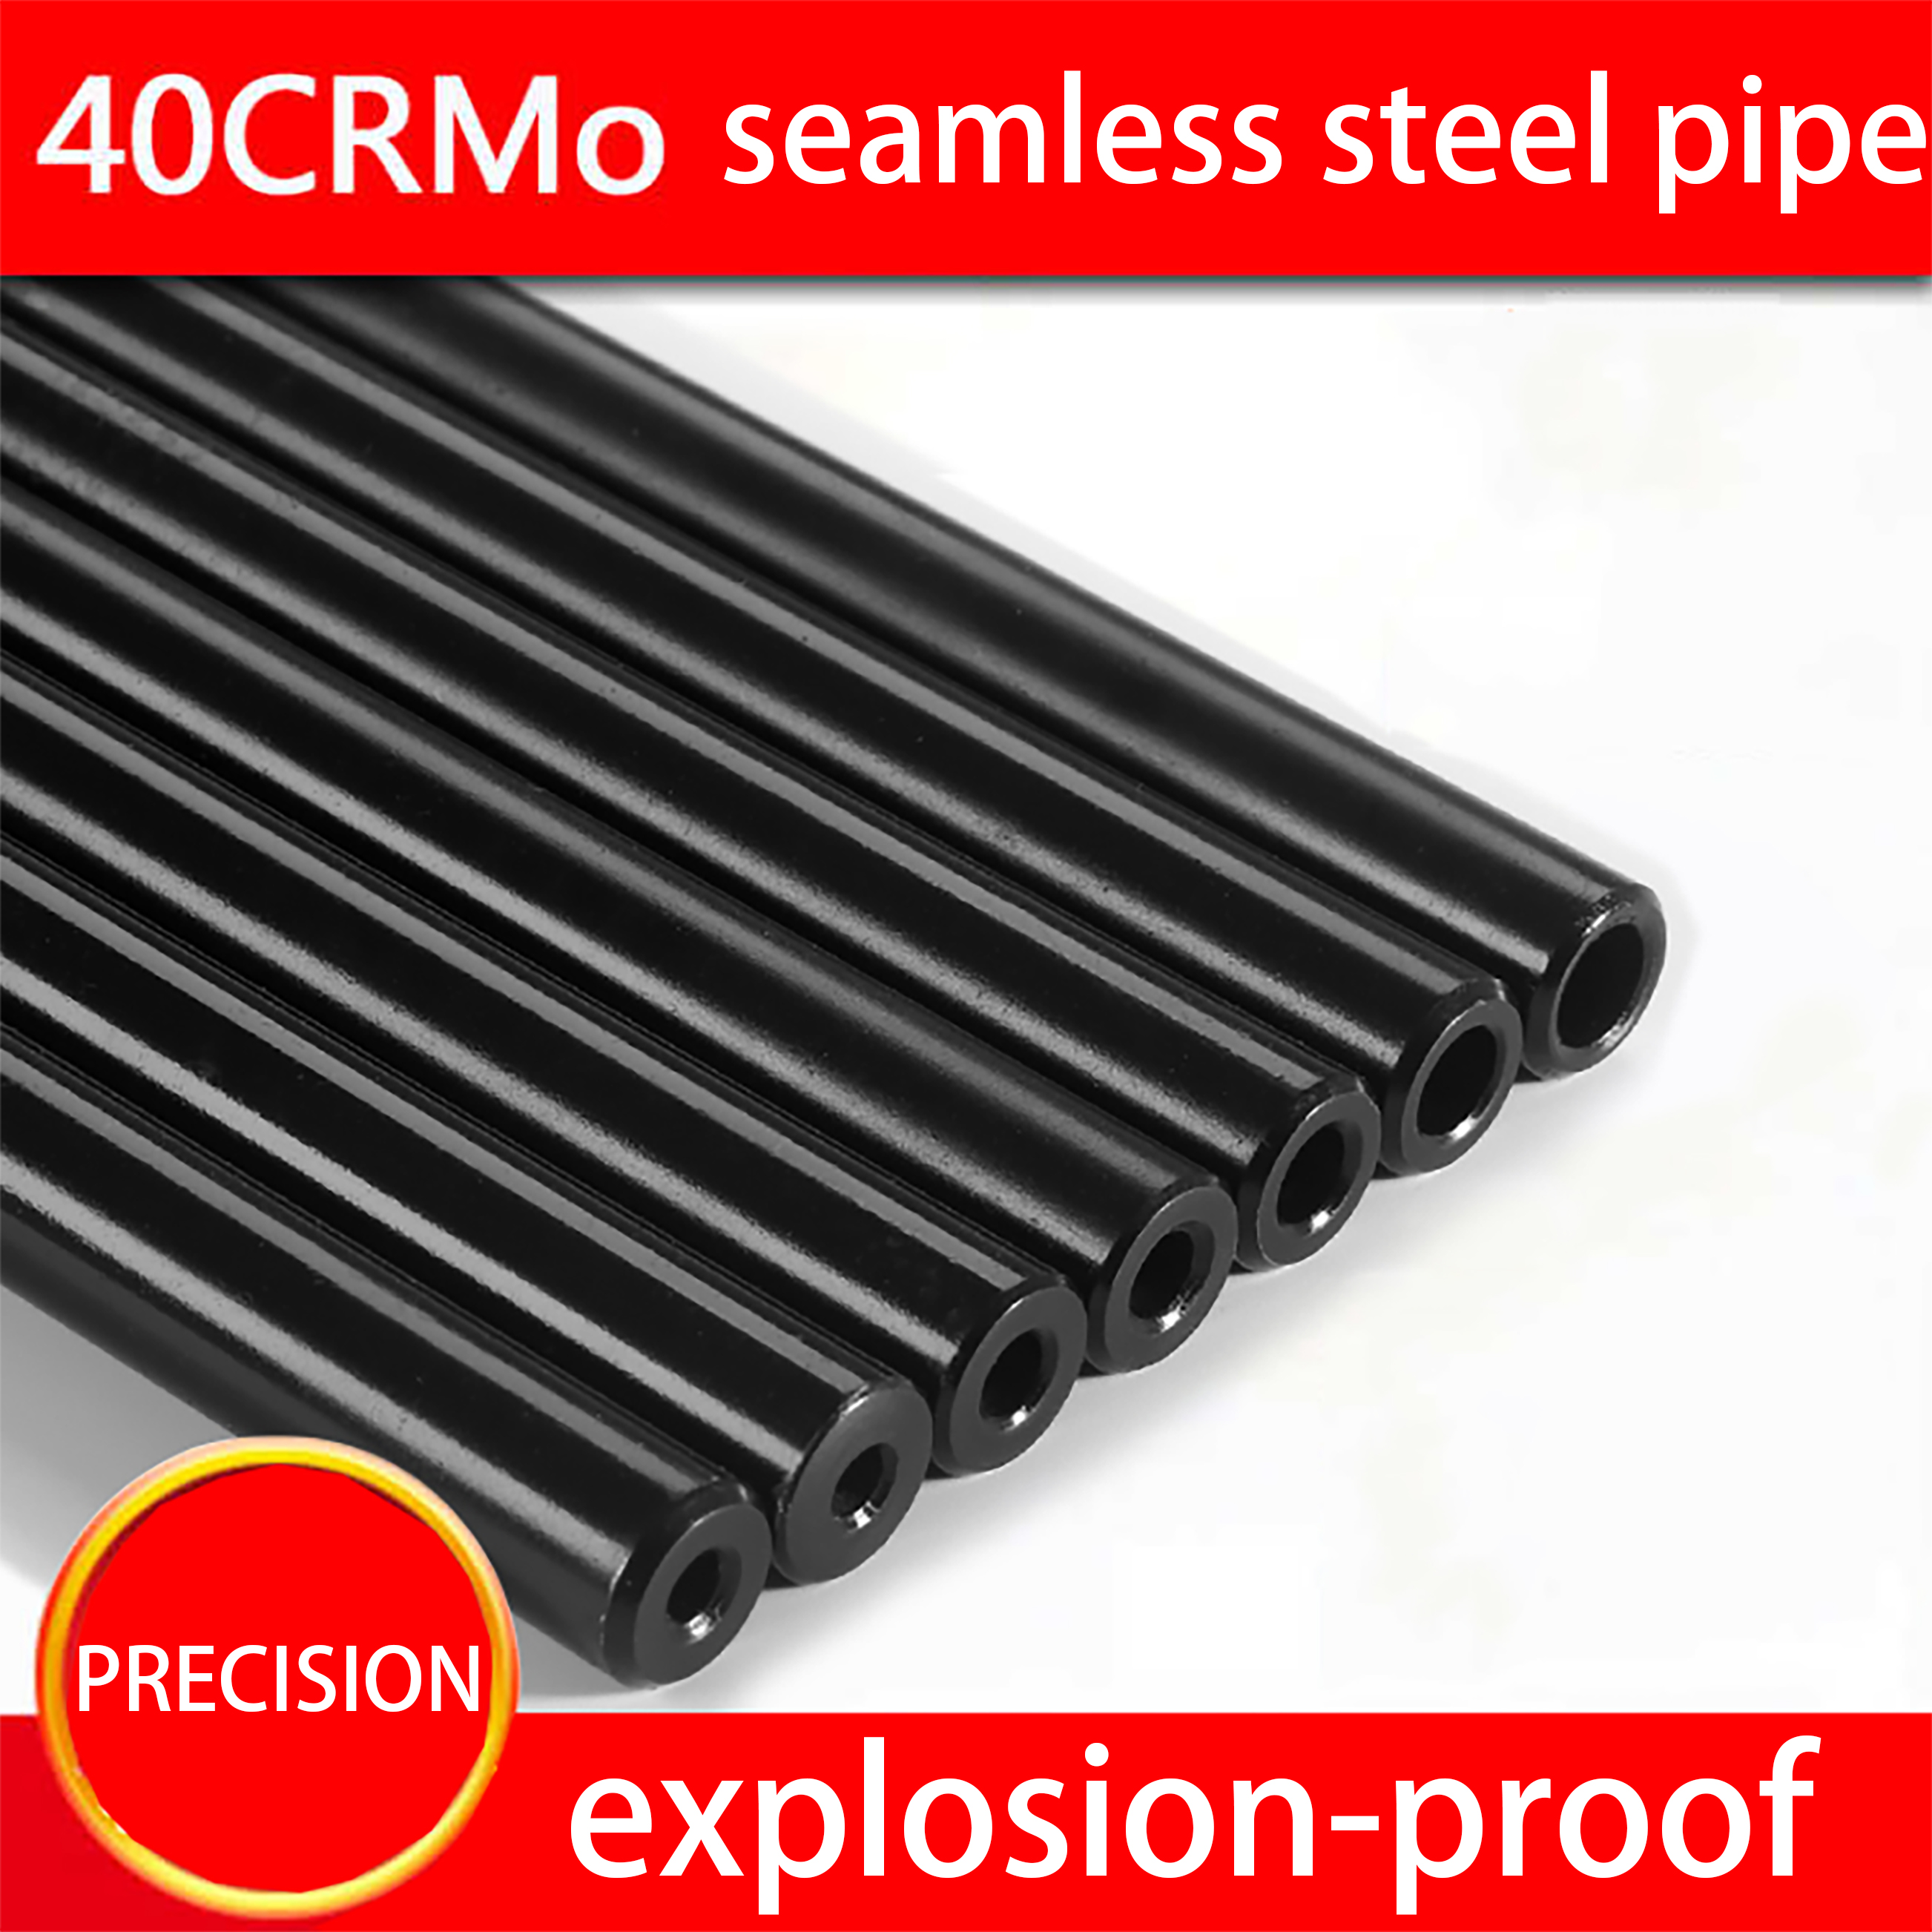 O/D 22mm Seamless Steel Pipe Explosion-proof Hydraulic Boiler Steel Tube Seamless for Home DIY Pipe